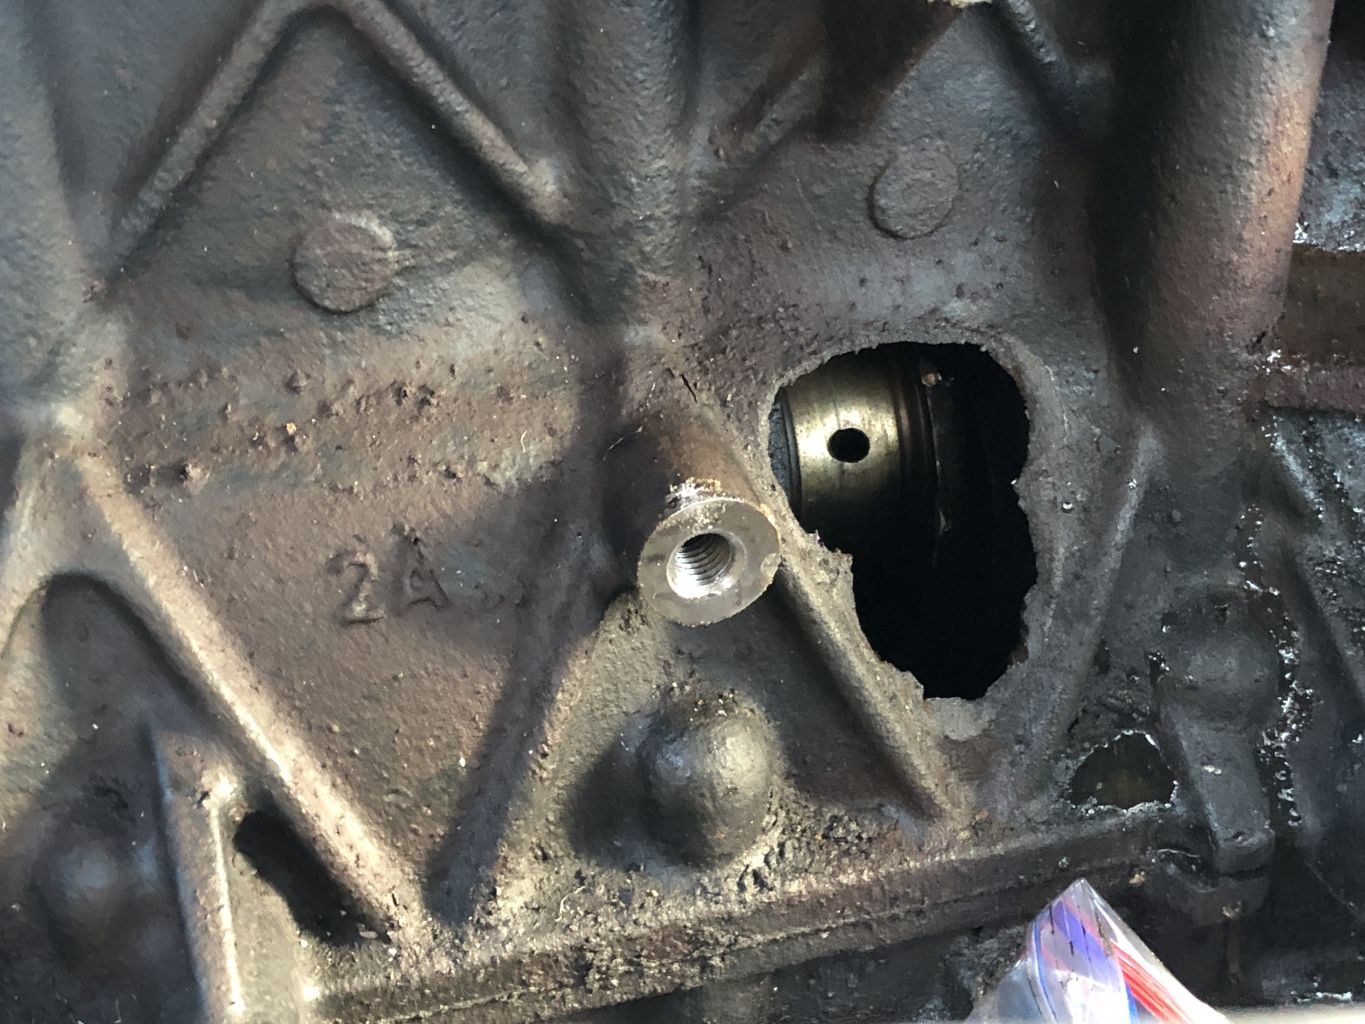 MINI Cooper S R53 Engine Block with Hole from conrod breaking